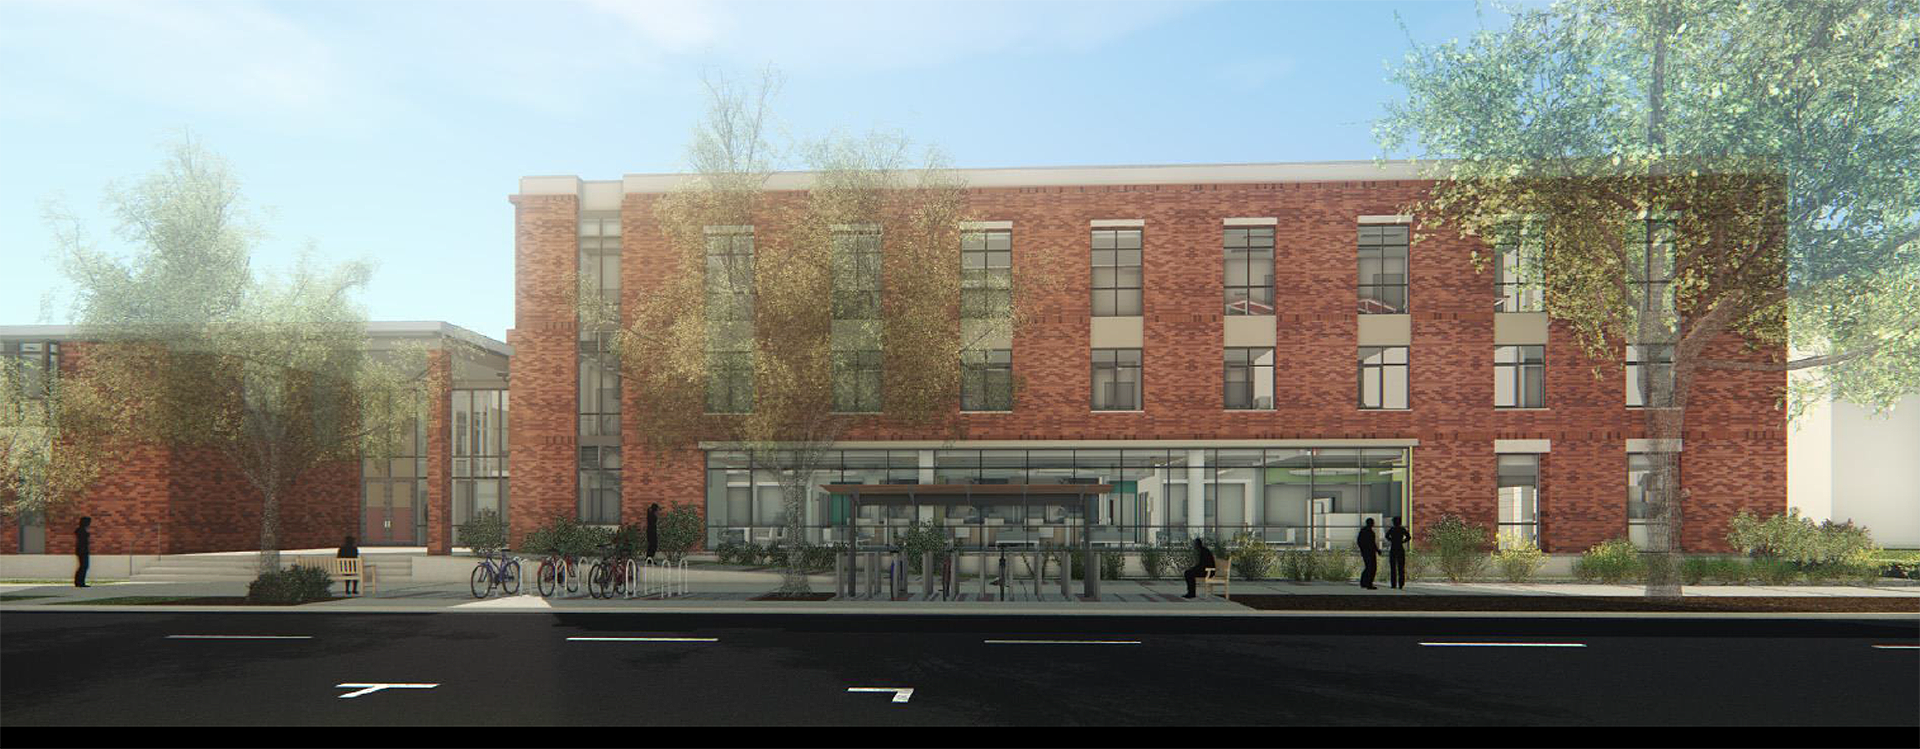 Artist rendition of remodeled health center